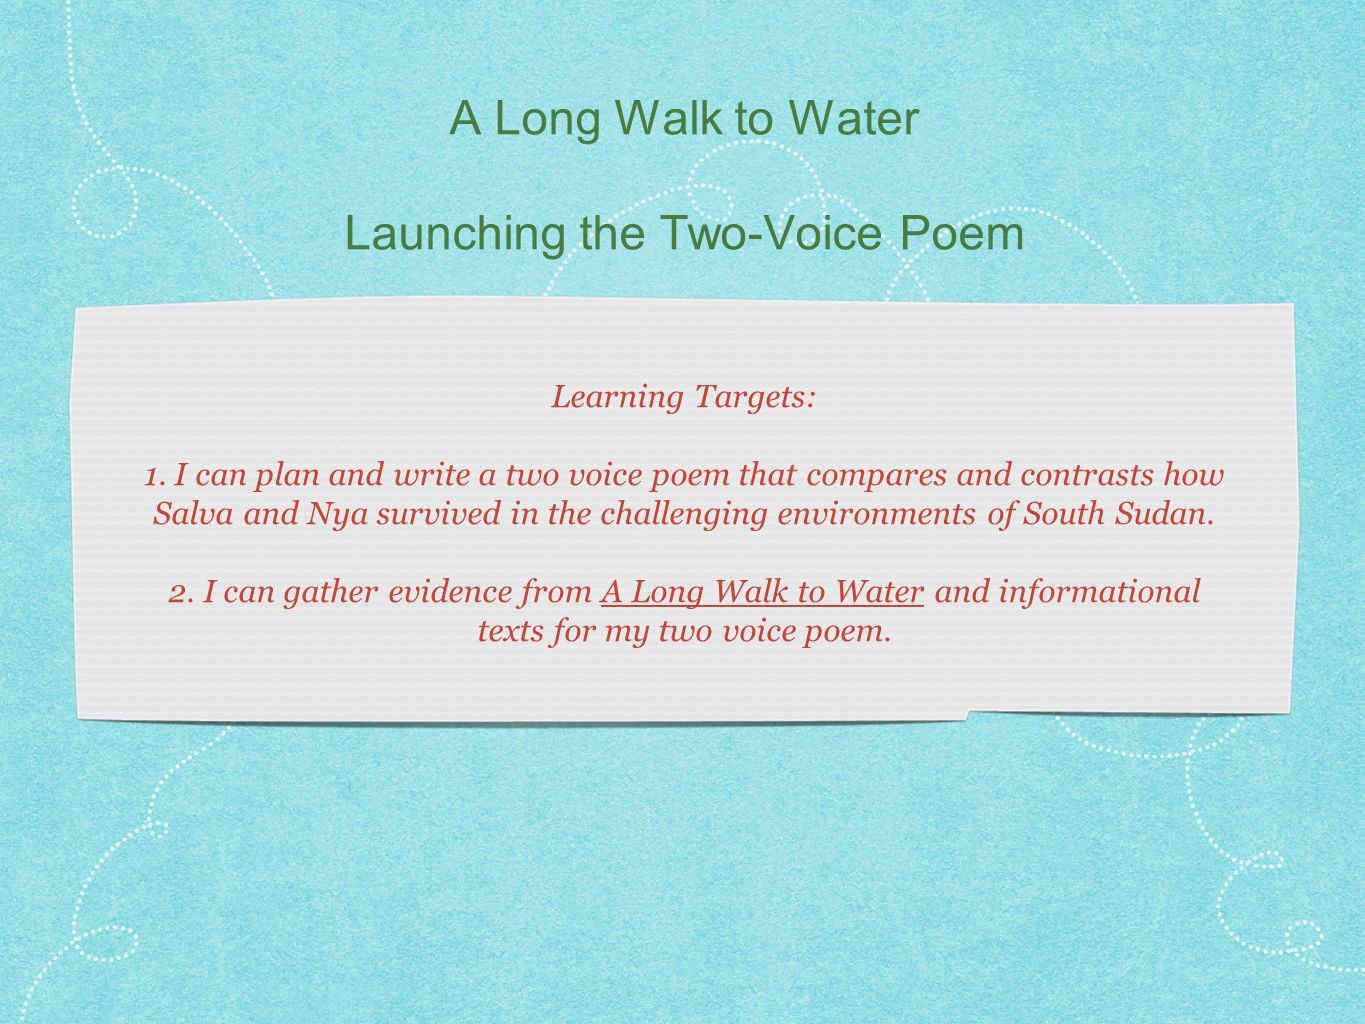 Essay on a long walk to water